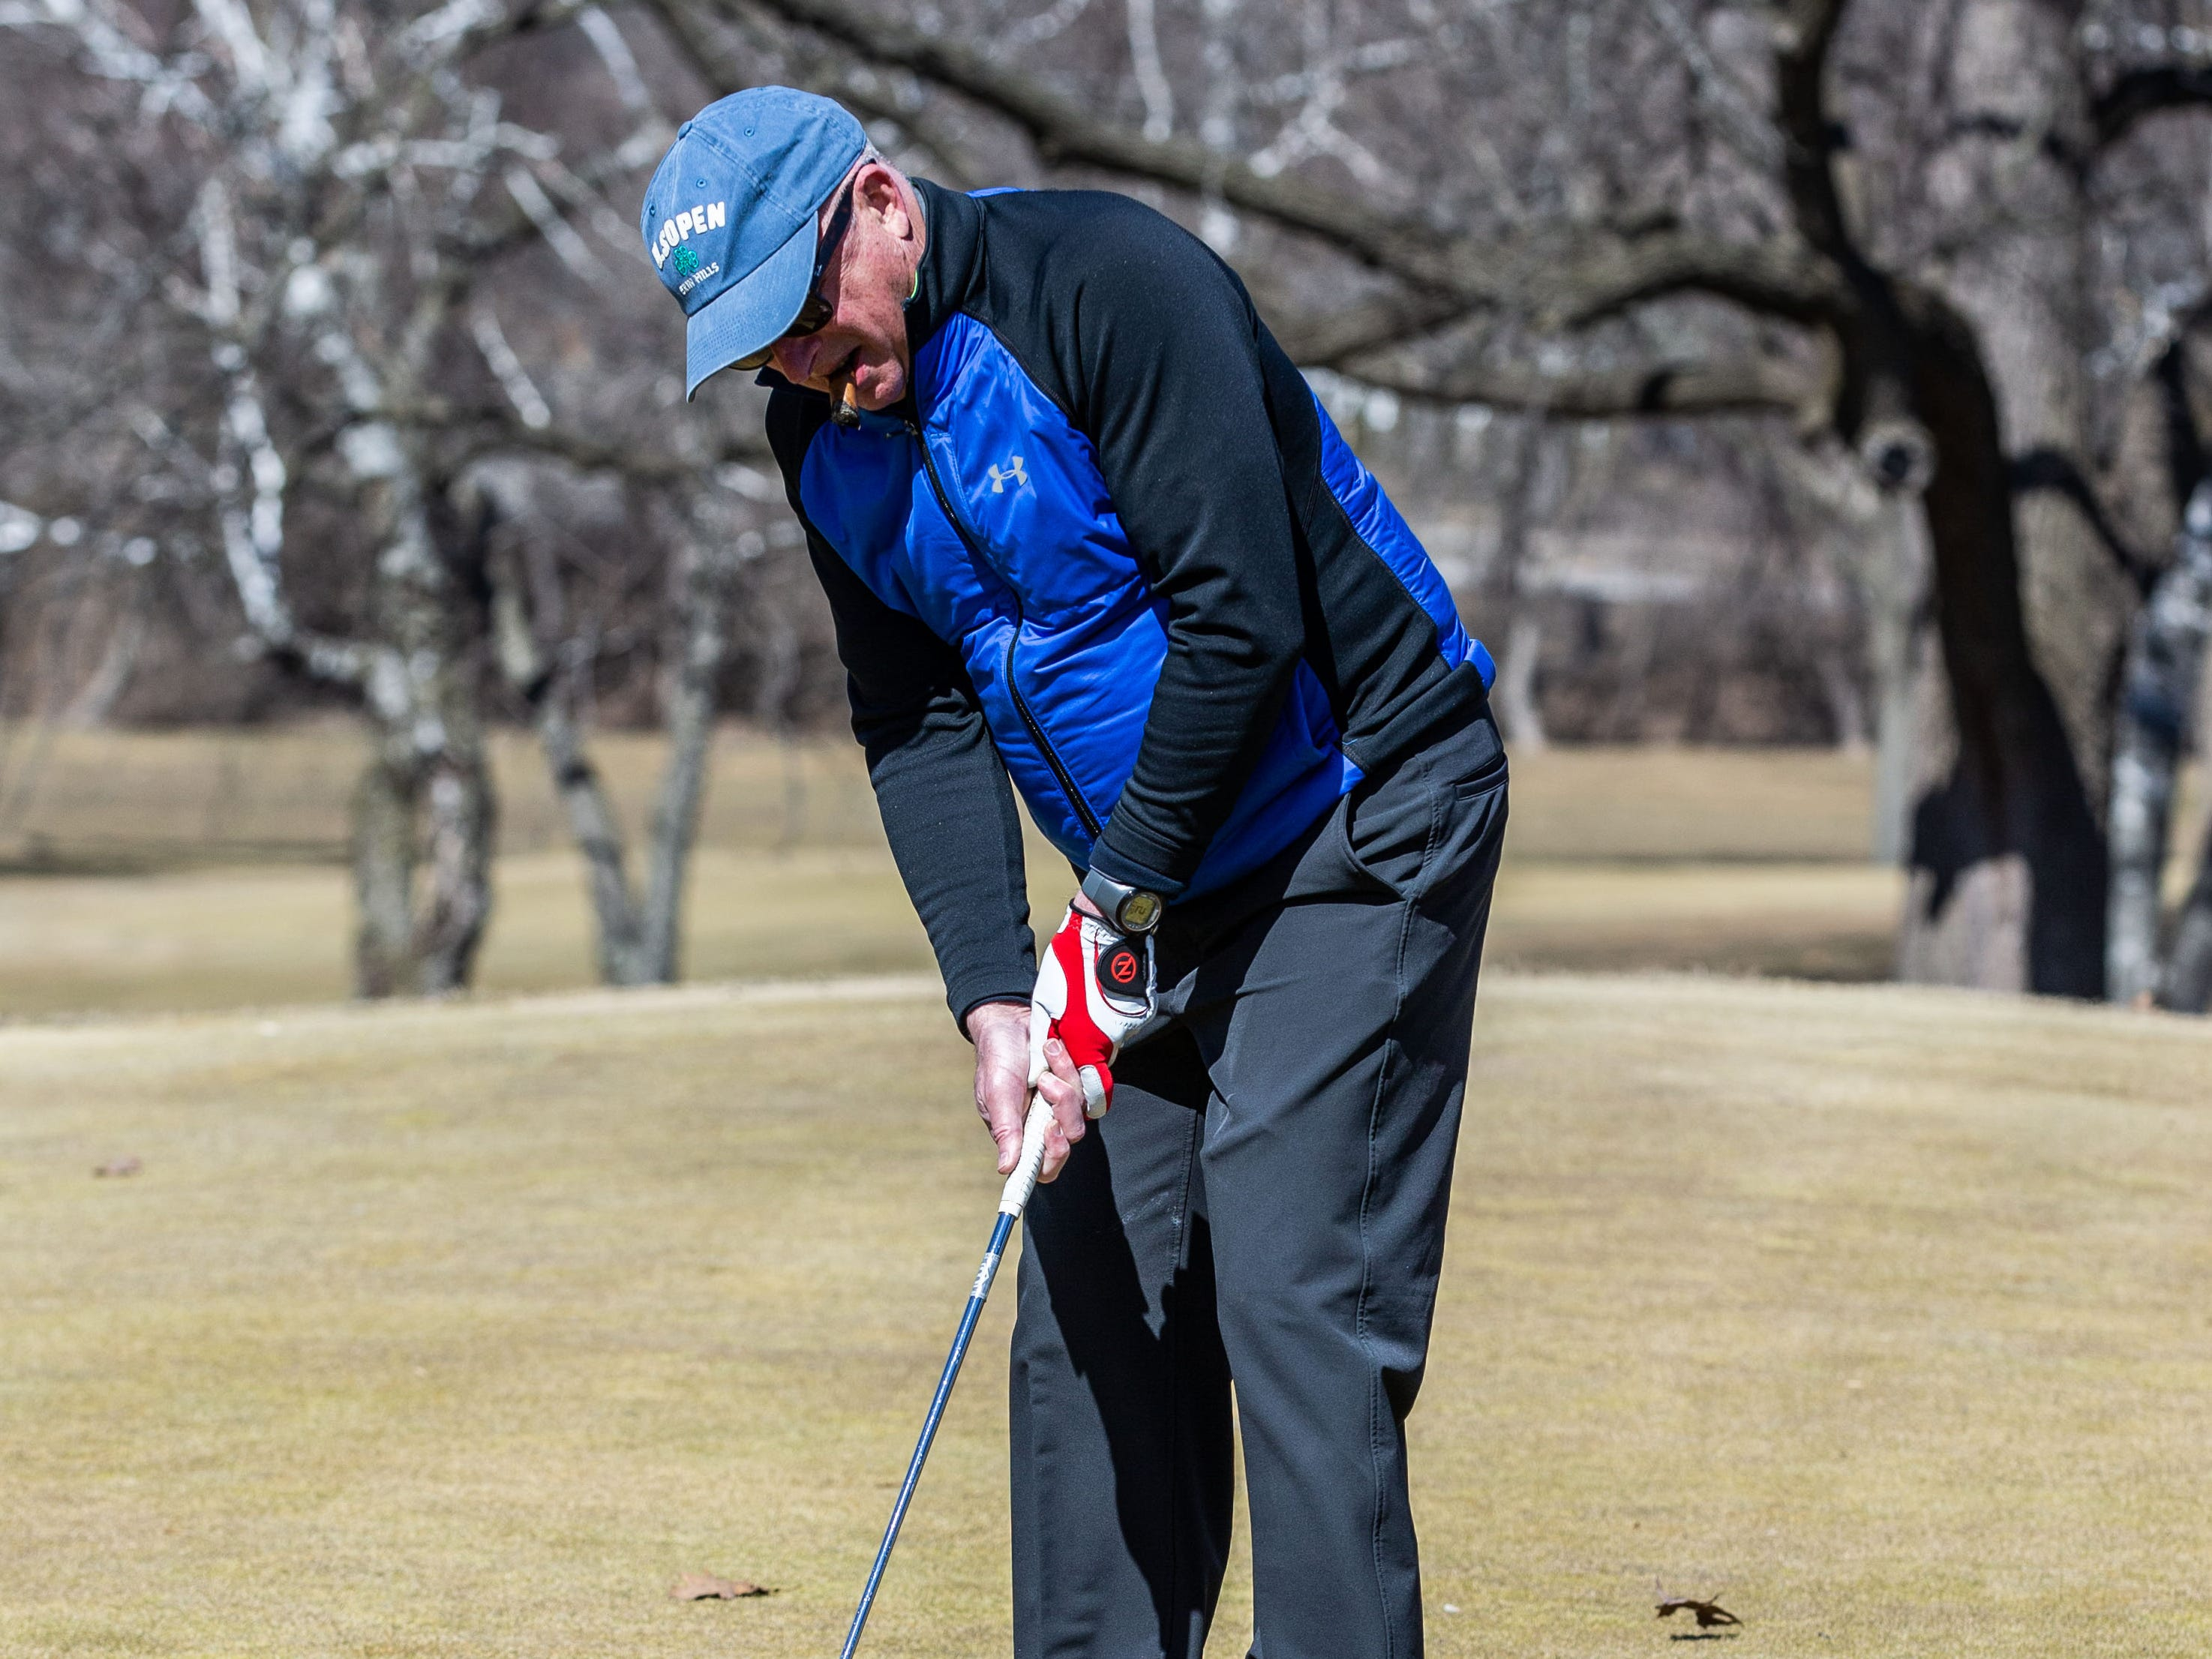 Chris Clemens of Menomonee Falls plays a round at Greenfield Park Golf Course on Saturday, March 23, 2019. Warm sunny weather lured many enthusiasts outside to enjoy the game.